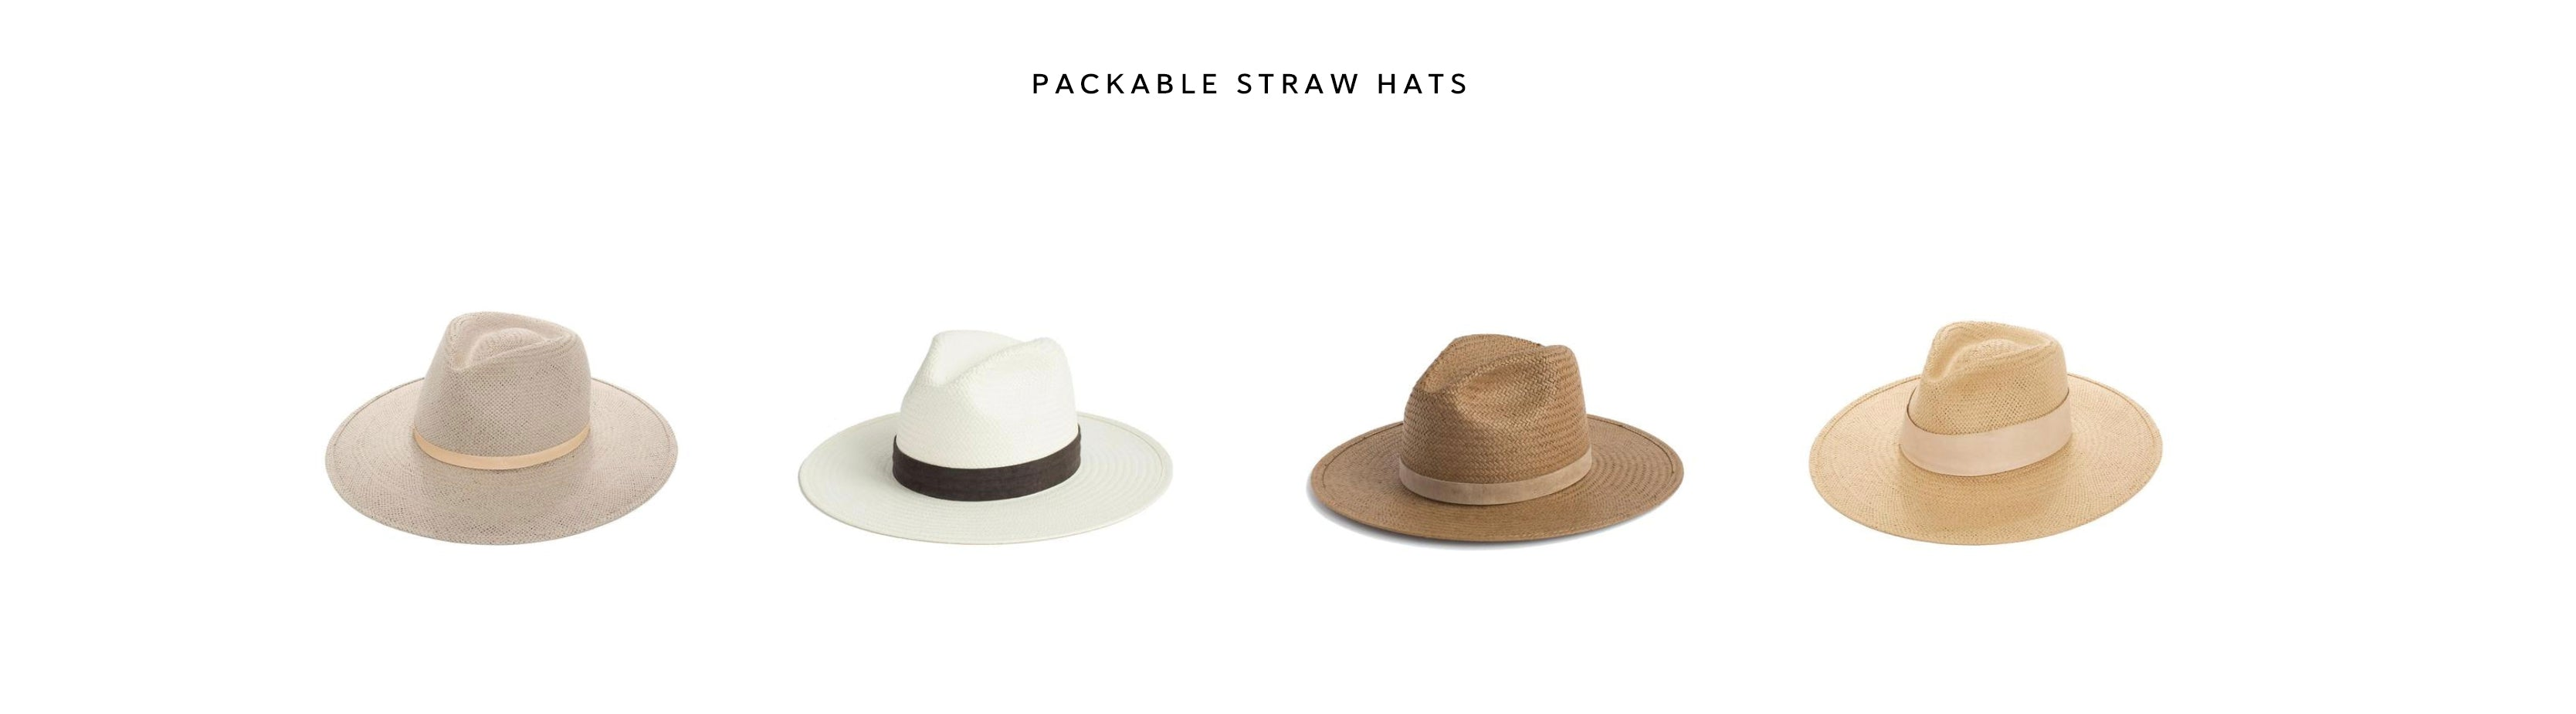 packable straw hats by janessa leone great for traveling. Womens summer hats foldable